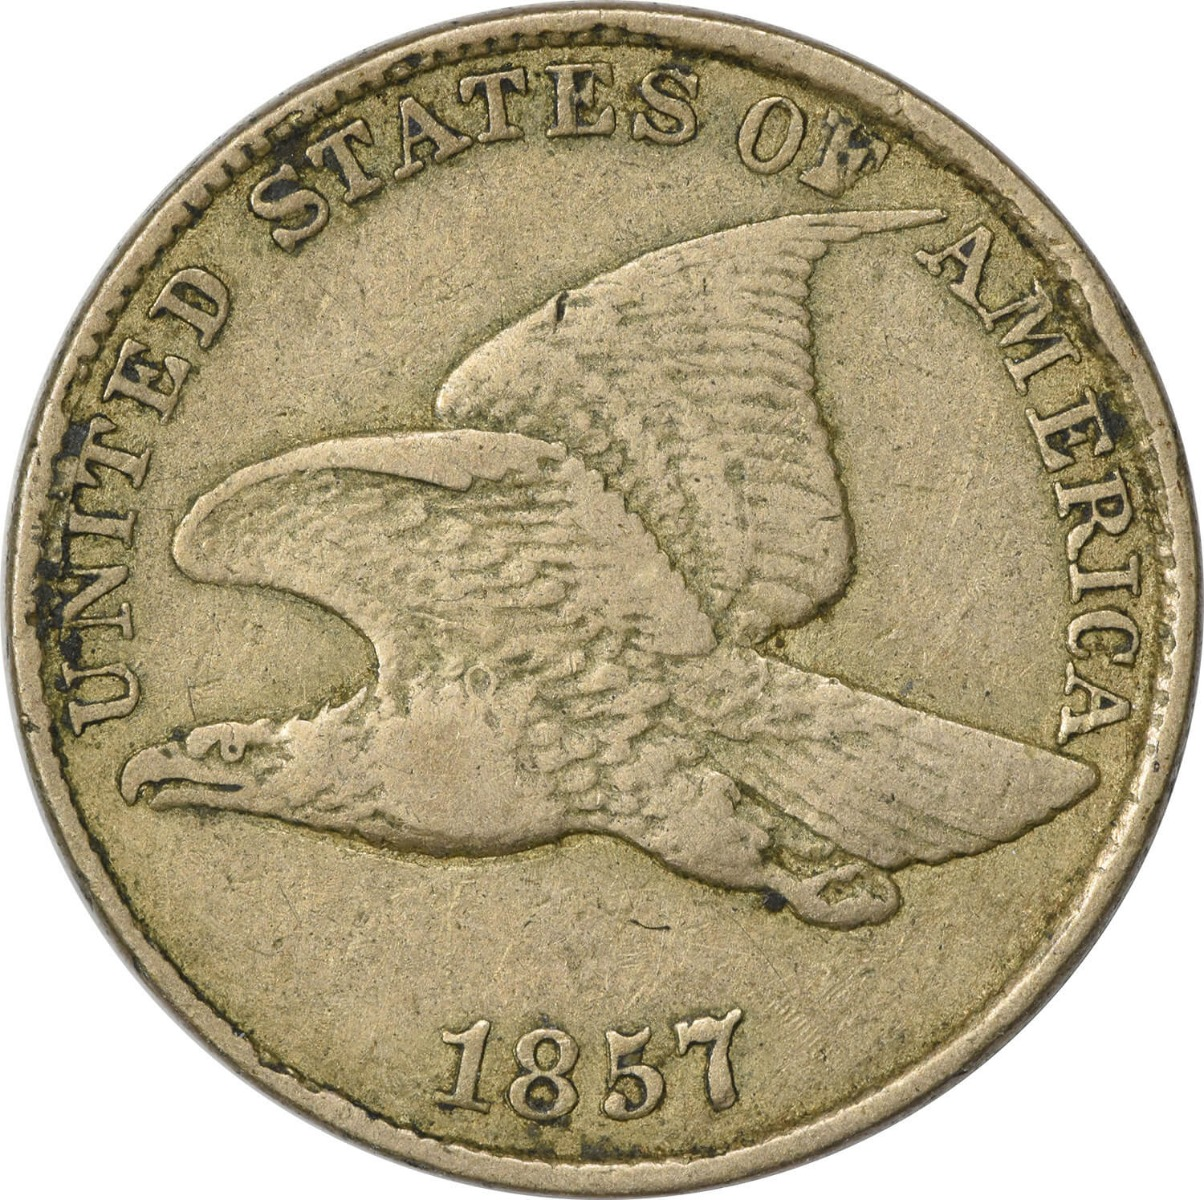 1857 Flying Eagle Cent VF Uncertified